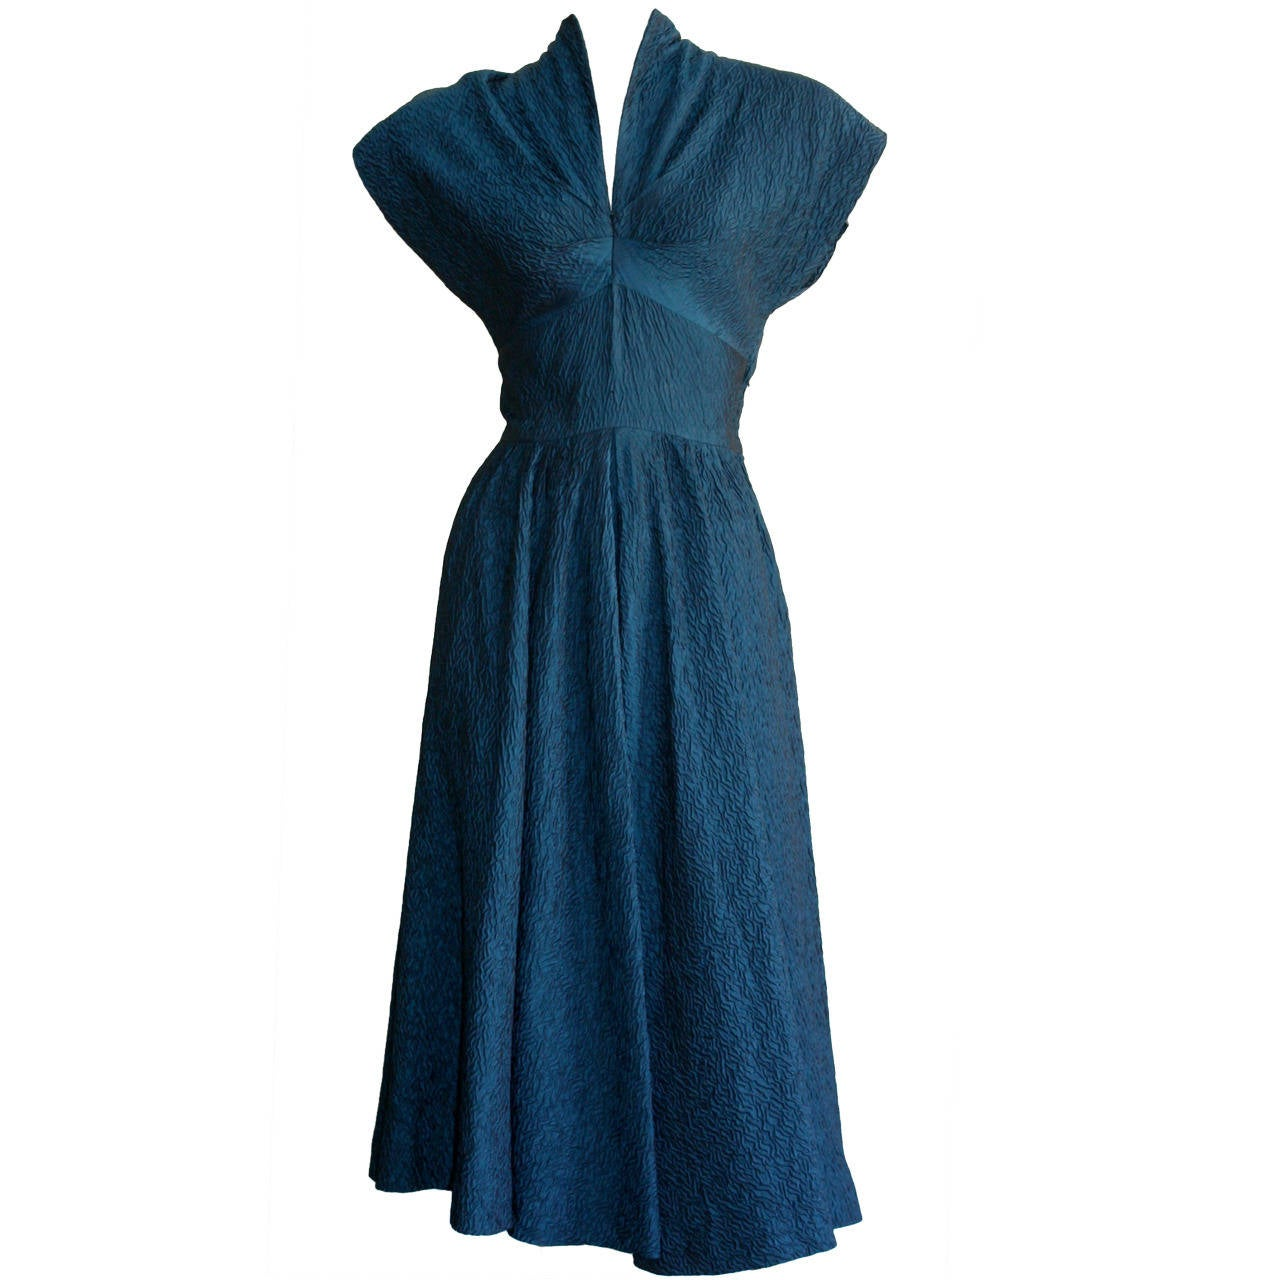 1940s Dressing Gown: Ultimate Vintage 1940s Dress Blue Textured Silk W